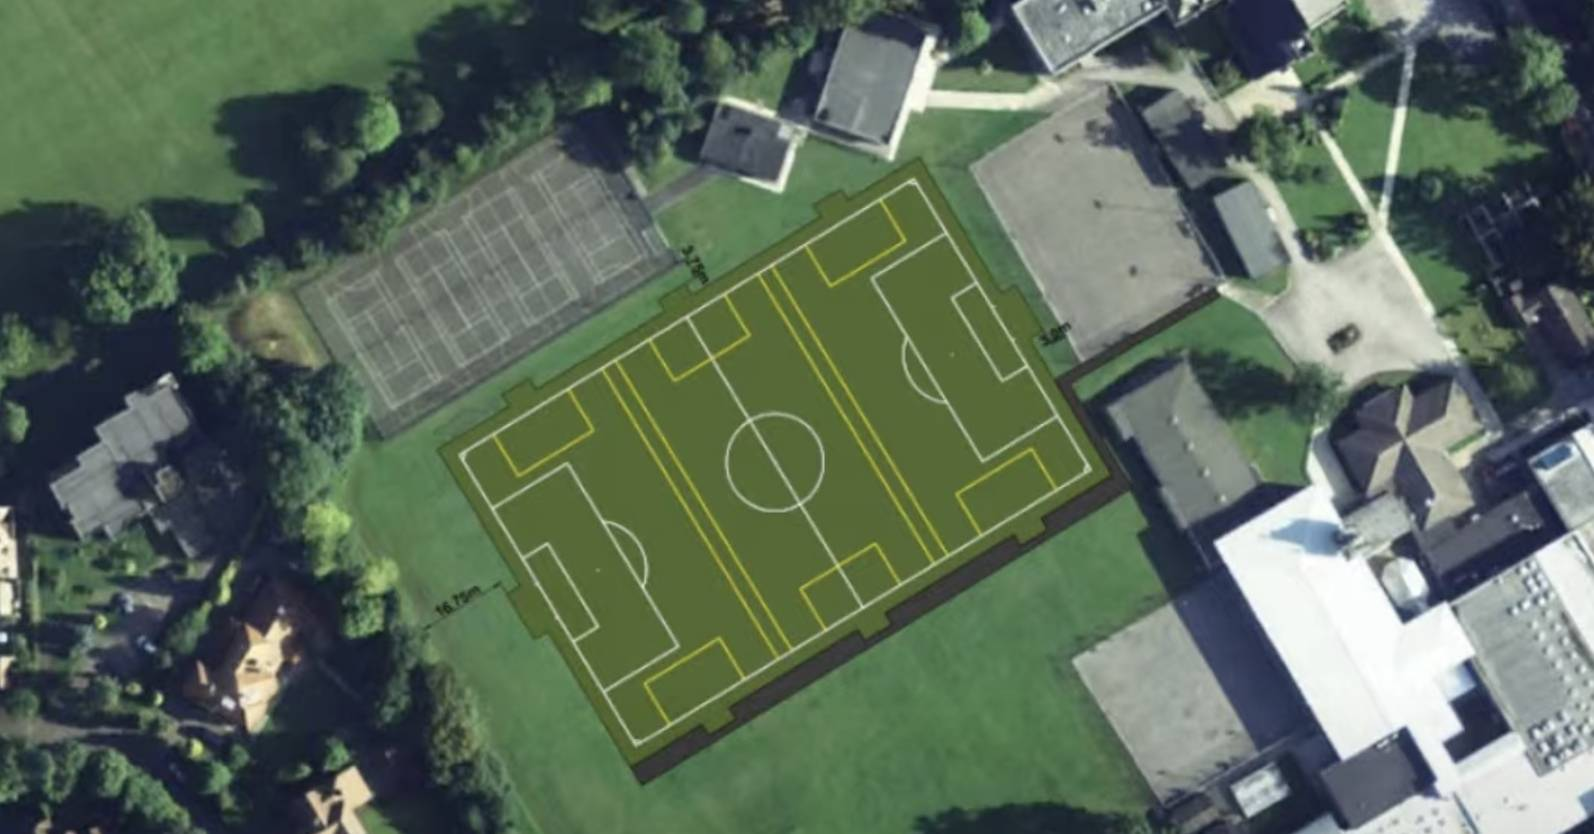 St Aidan's floodlit pitch plans approved